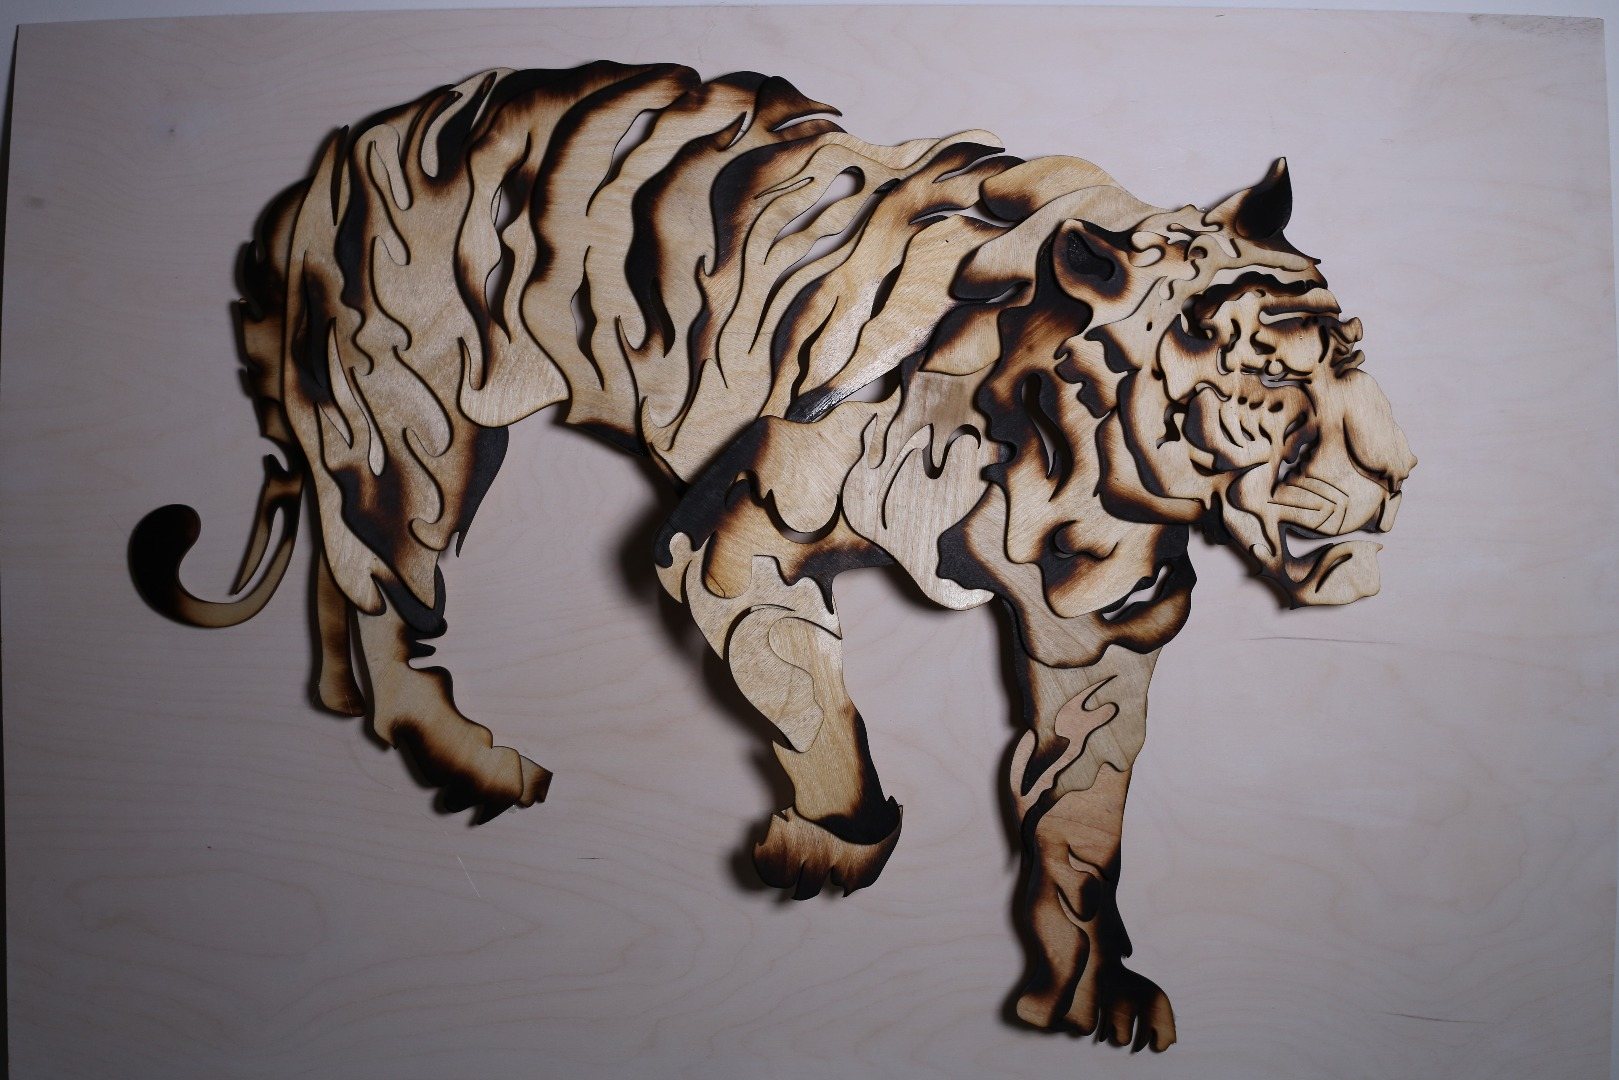 Picture of Tiger Sculpture From Scrap Wood